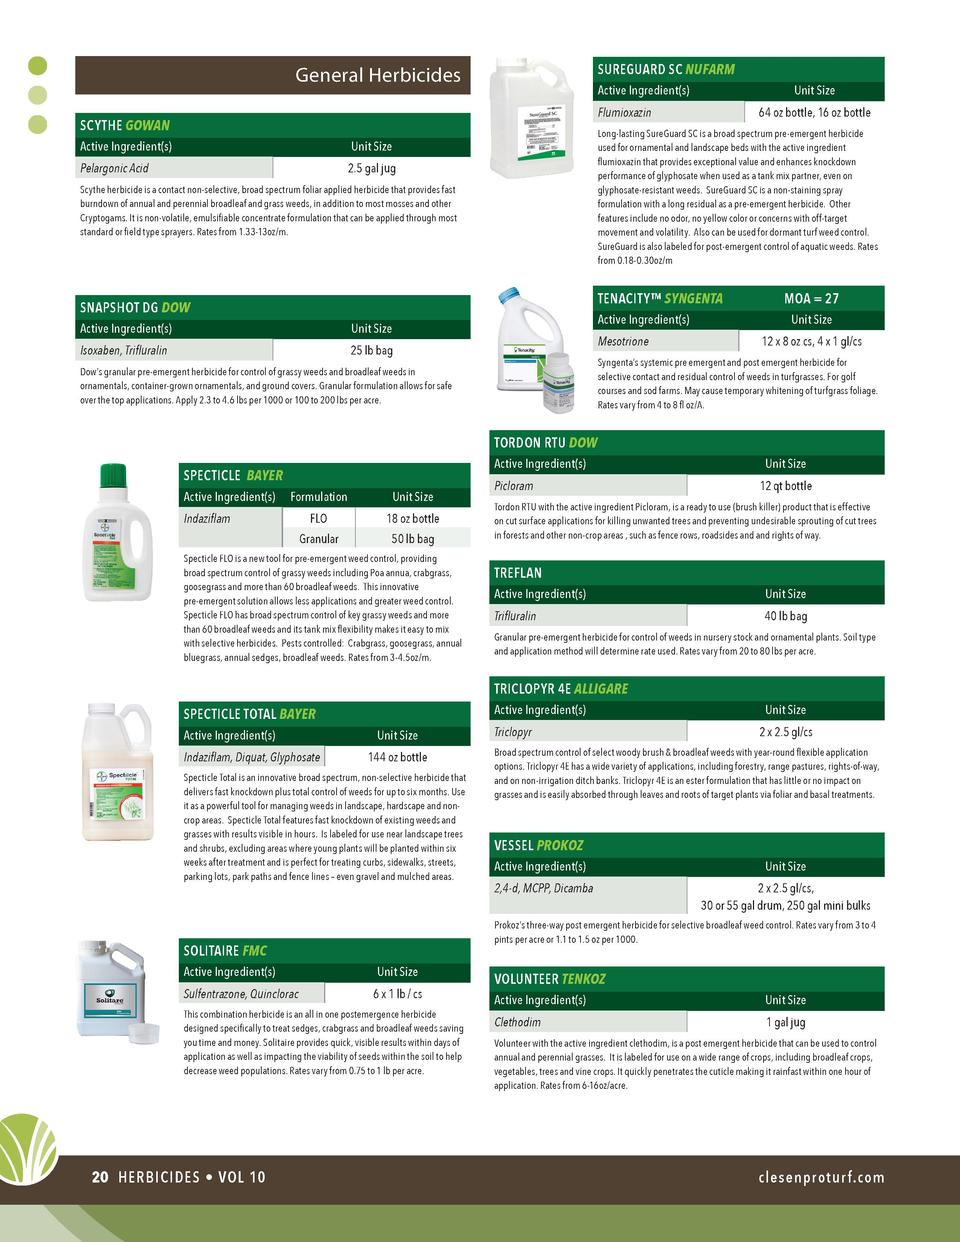 SUREGUARD SC NUFARM  General Herbicides  Active Ingredient s   Unit Size 64 oz bottle, 16 oz bottle  Flumioxazin  SCYTHE G...